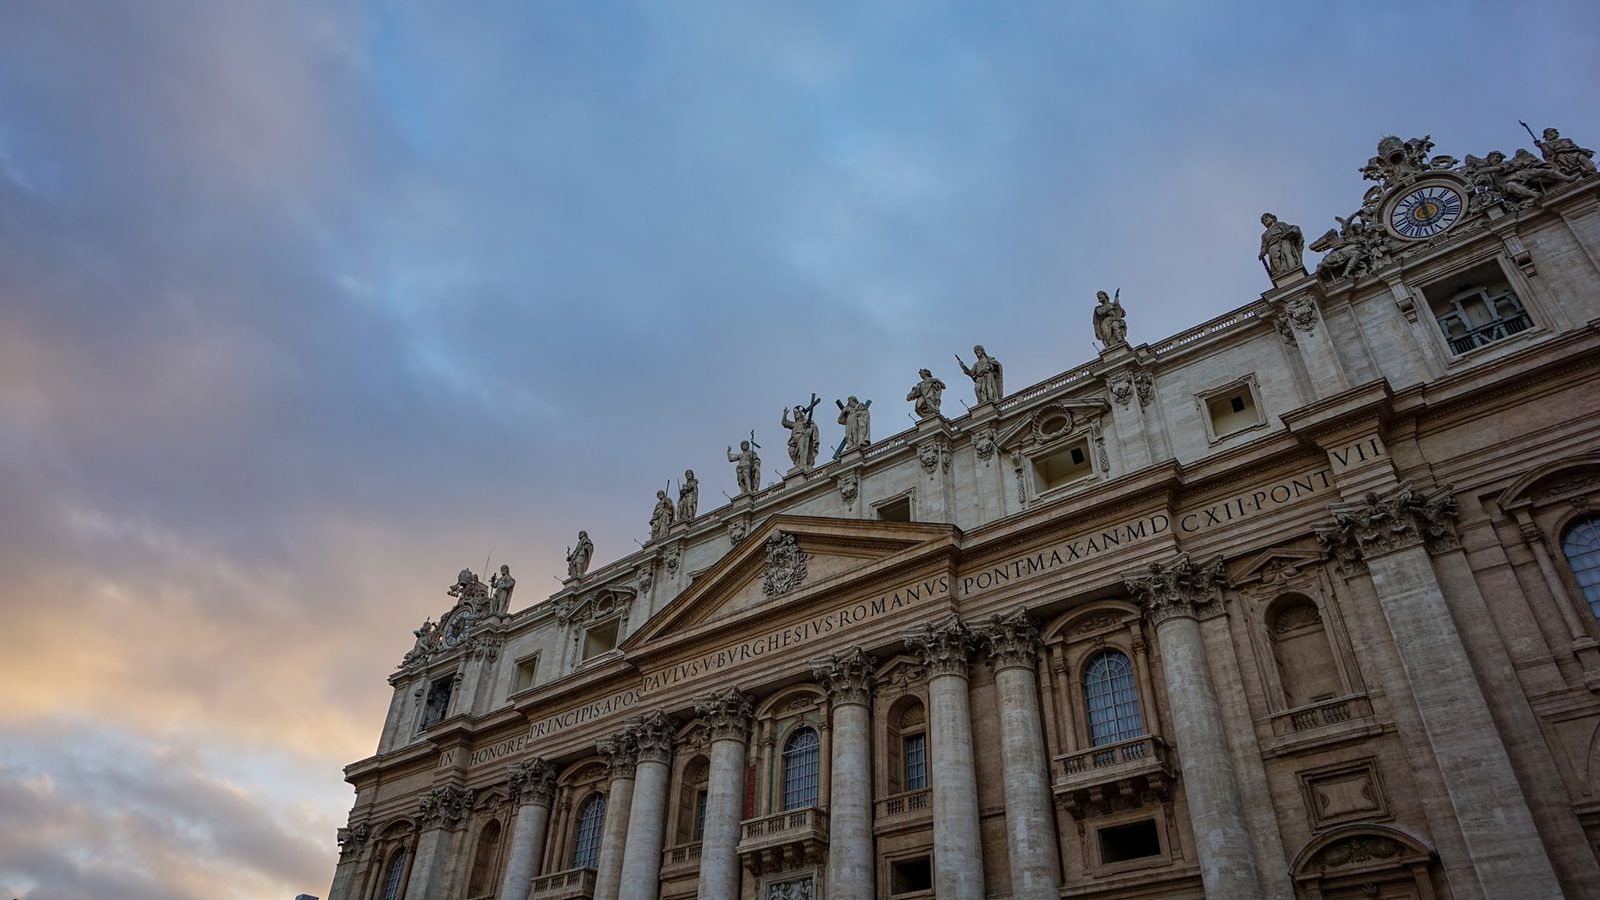 Old building in Vatican City at dawn